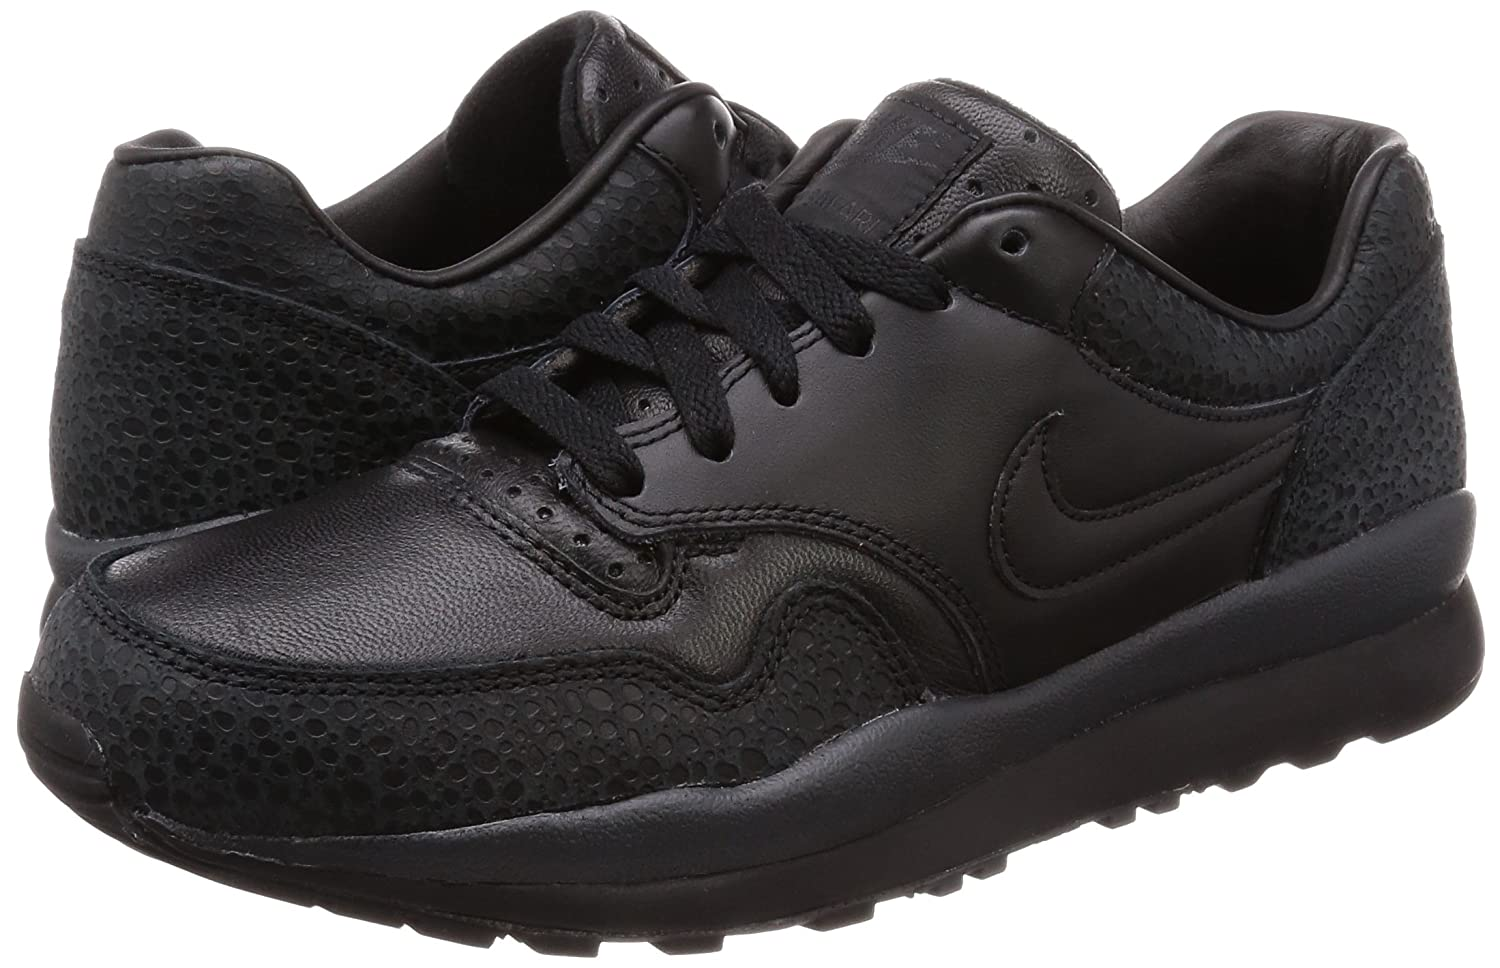 half off 0a527 83b99 Amazon.com  Nike Mens Air Safari QS Basketball Shoes  BlackBlack-Anthracite AO3295-002  Shoes